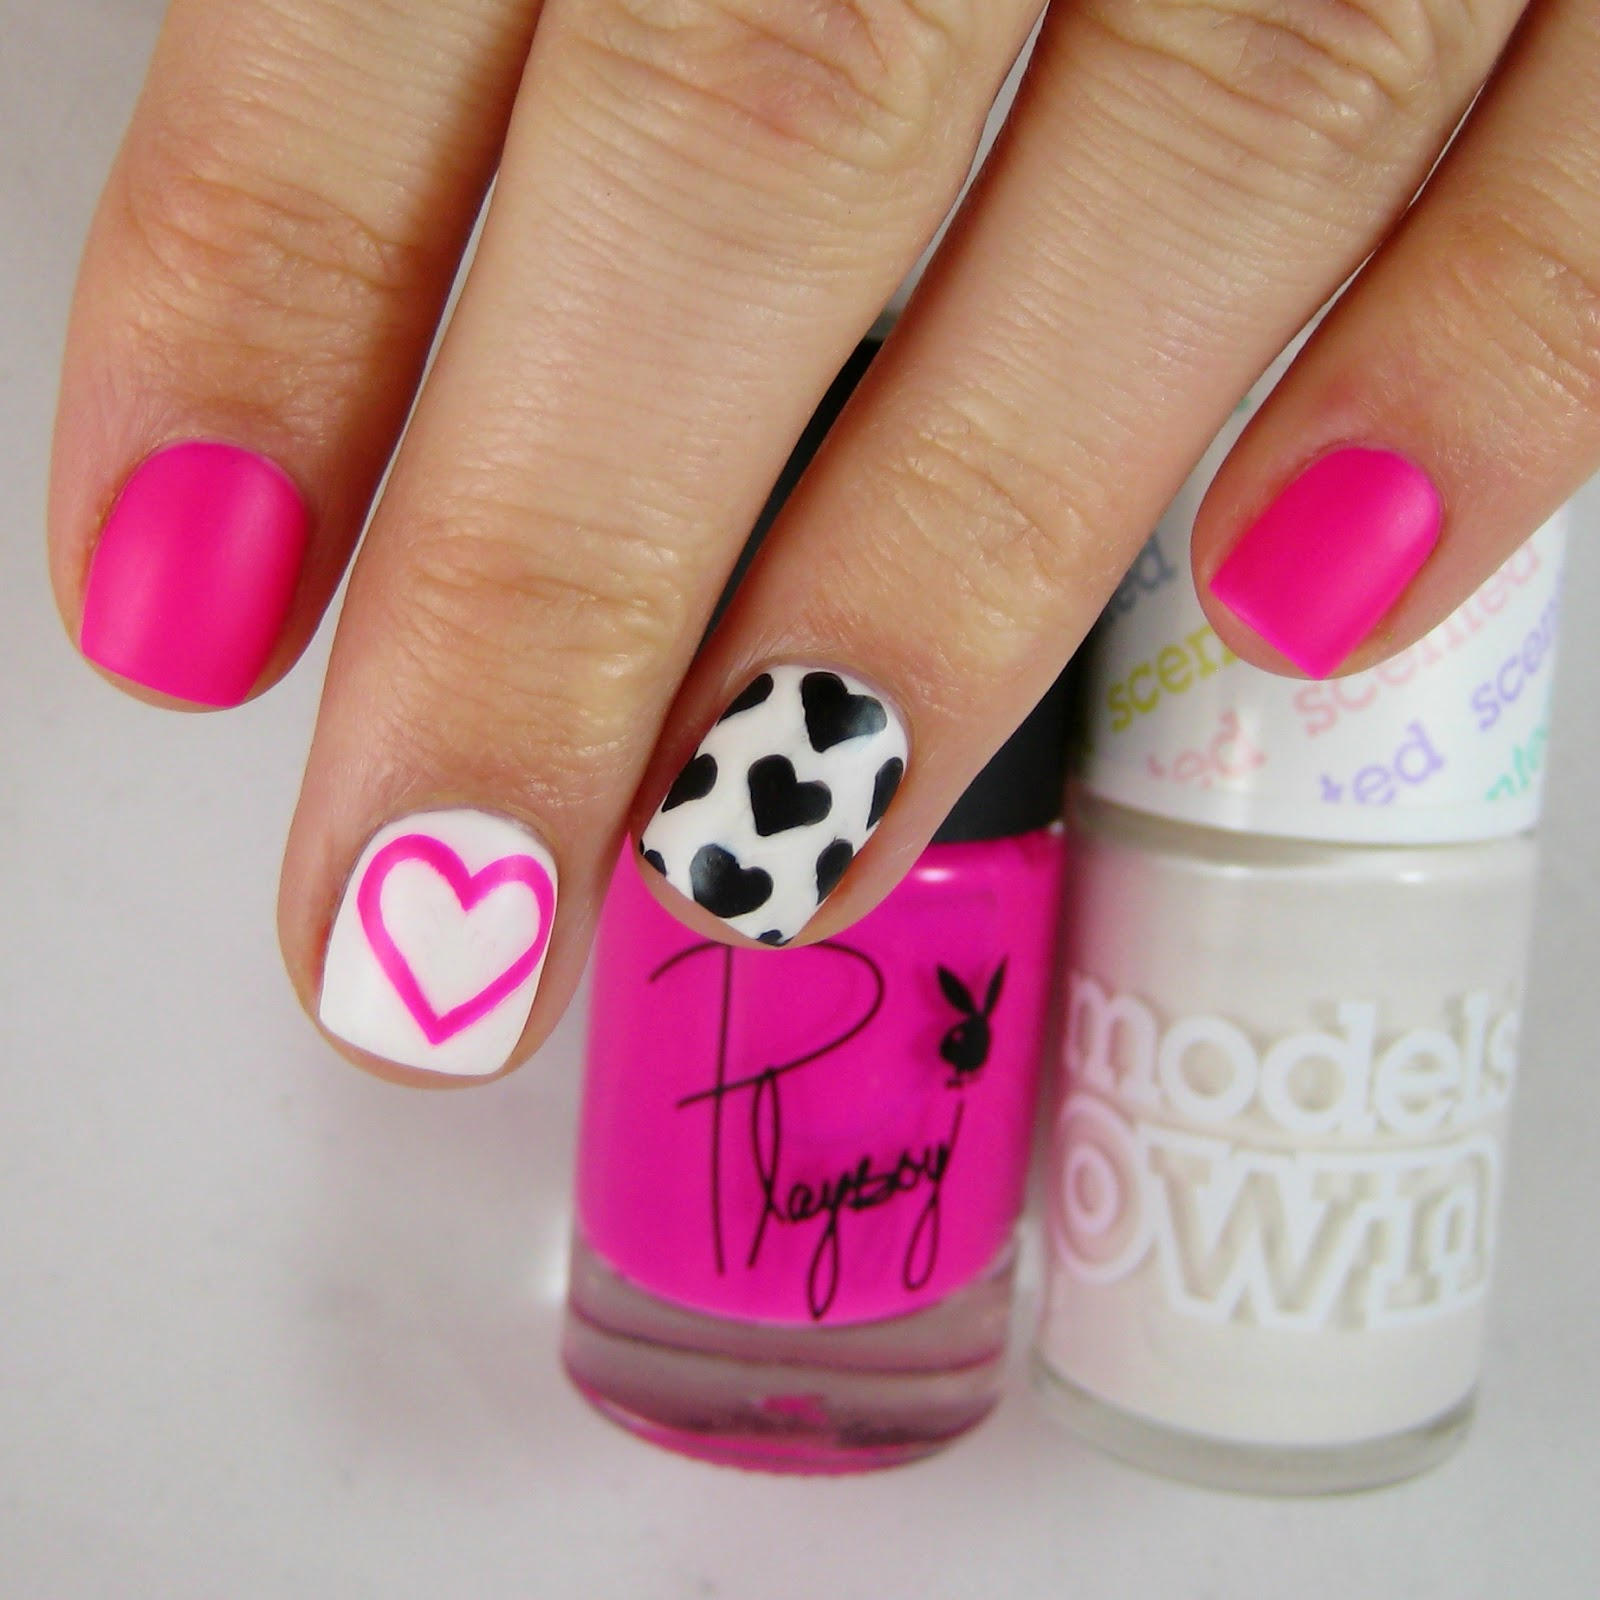 For The Little Black Hearts I Used A Barry M Nail Art Pen It's Not Thin  Tidbits&twinehowtomakeaperfectcirclestep